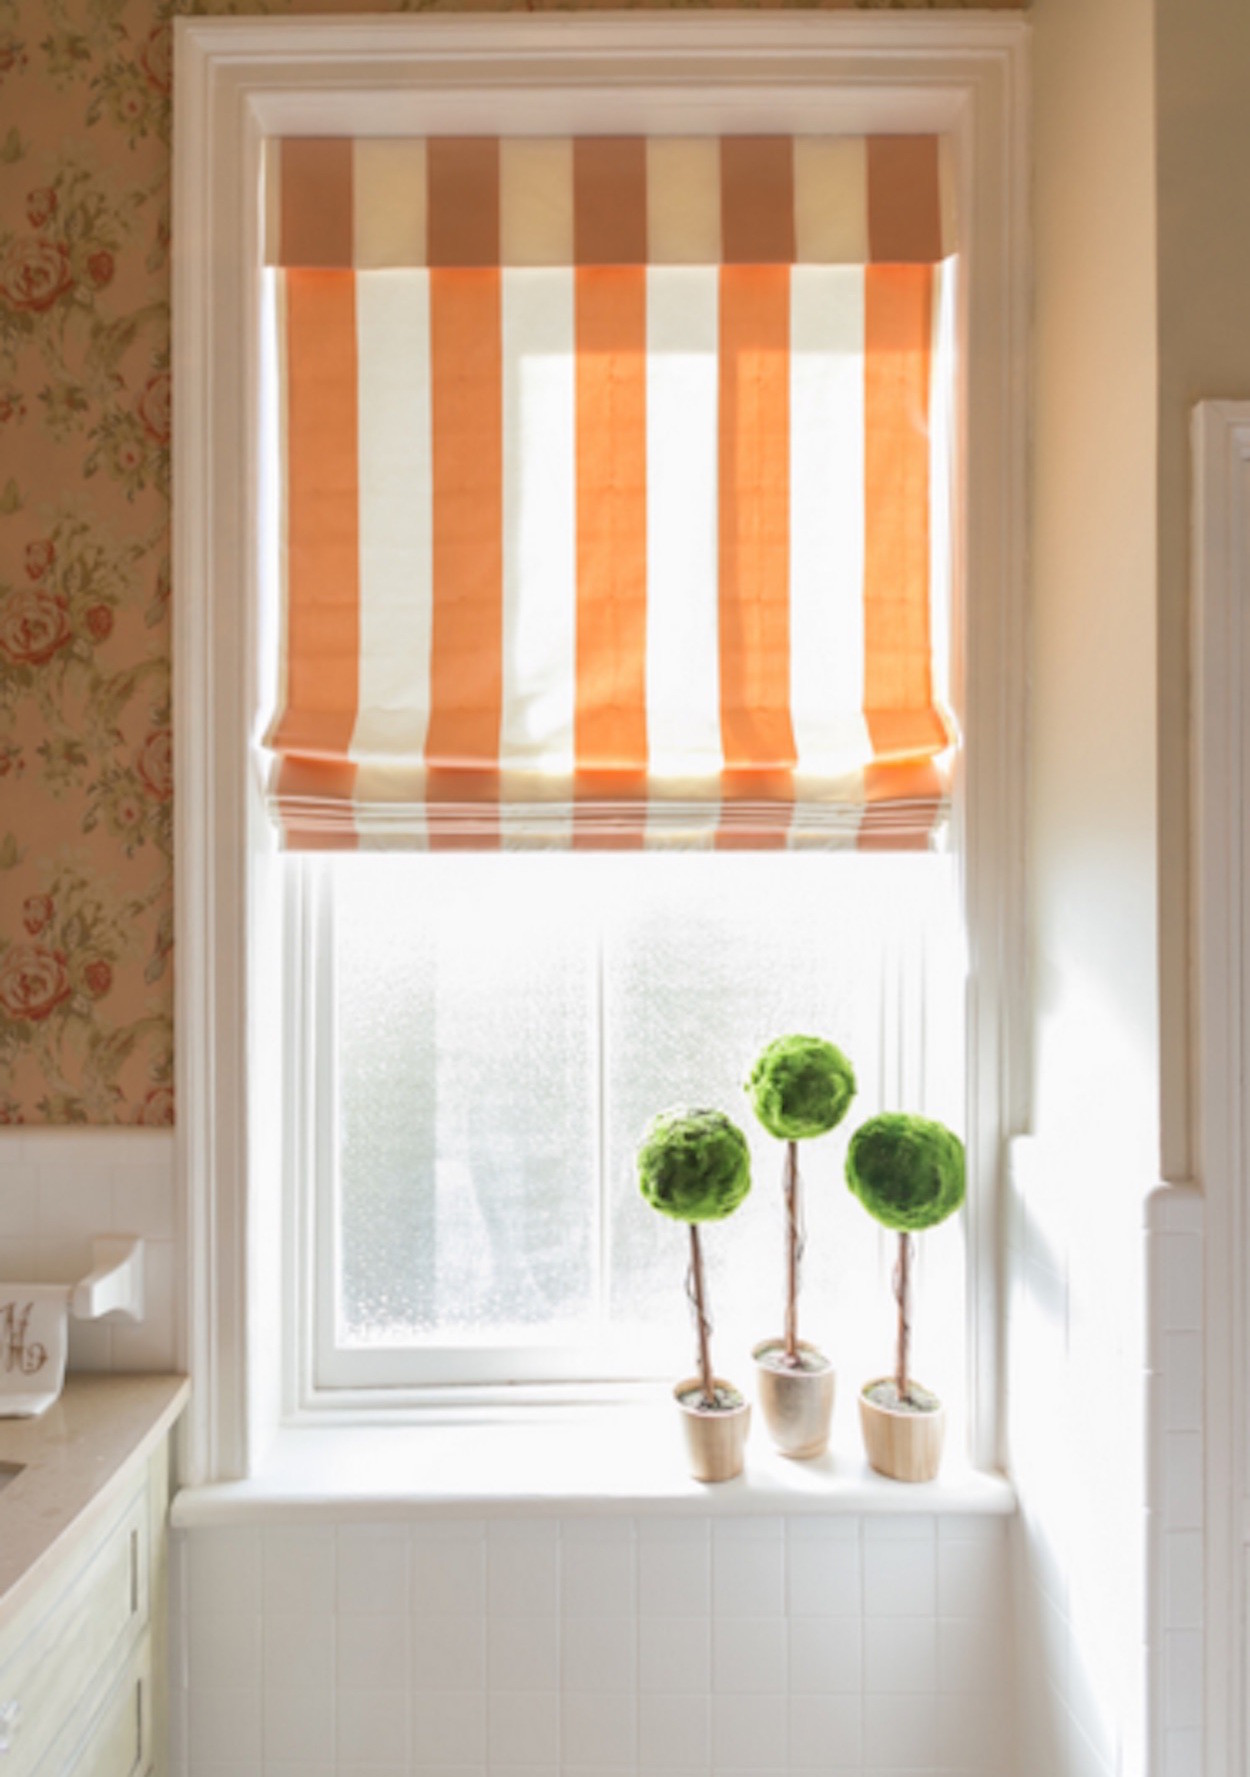 Bon 7 Different Bathroom Window Treatments You Might Not Have Thought Of |  Martha Stewart